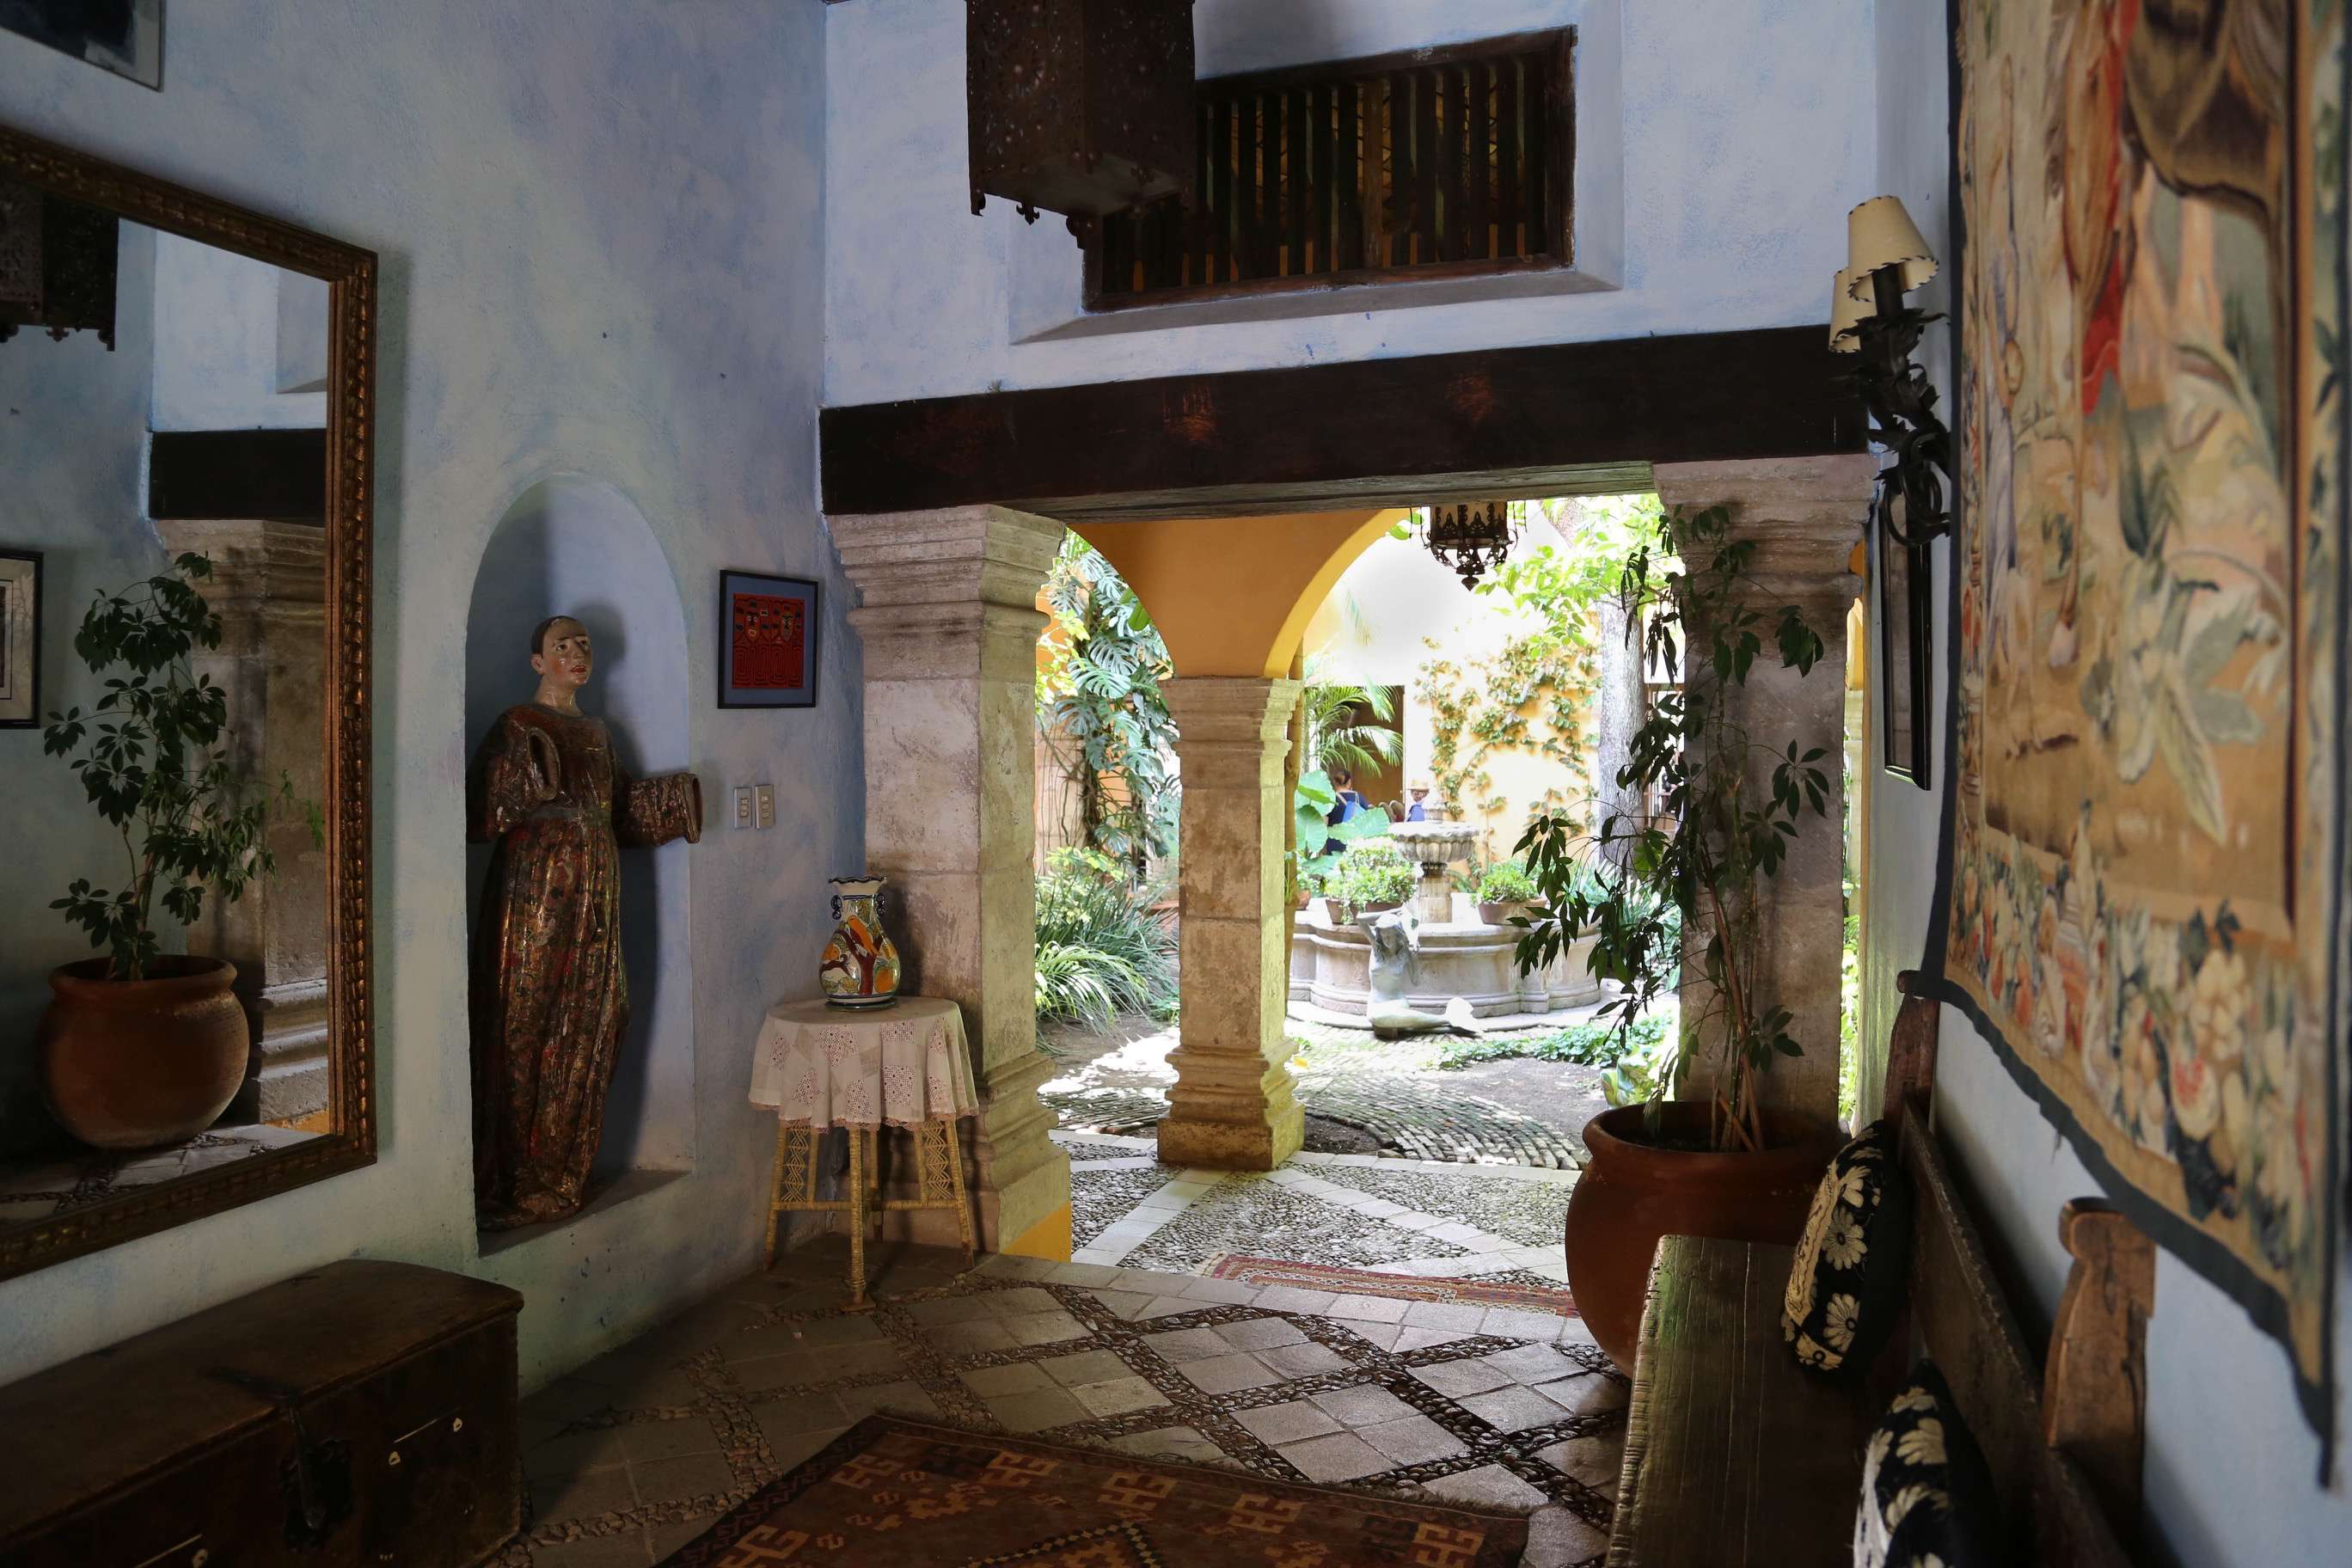 The entry hall of this large home transitions into a lovely courtyard with a tranquil fountain.